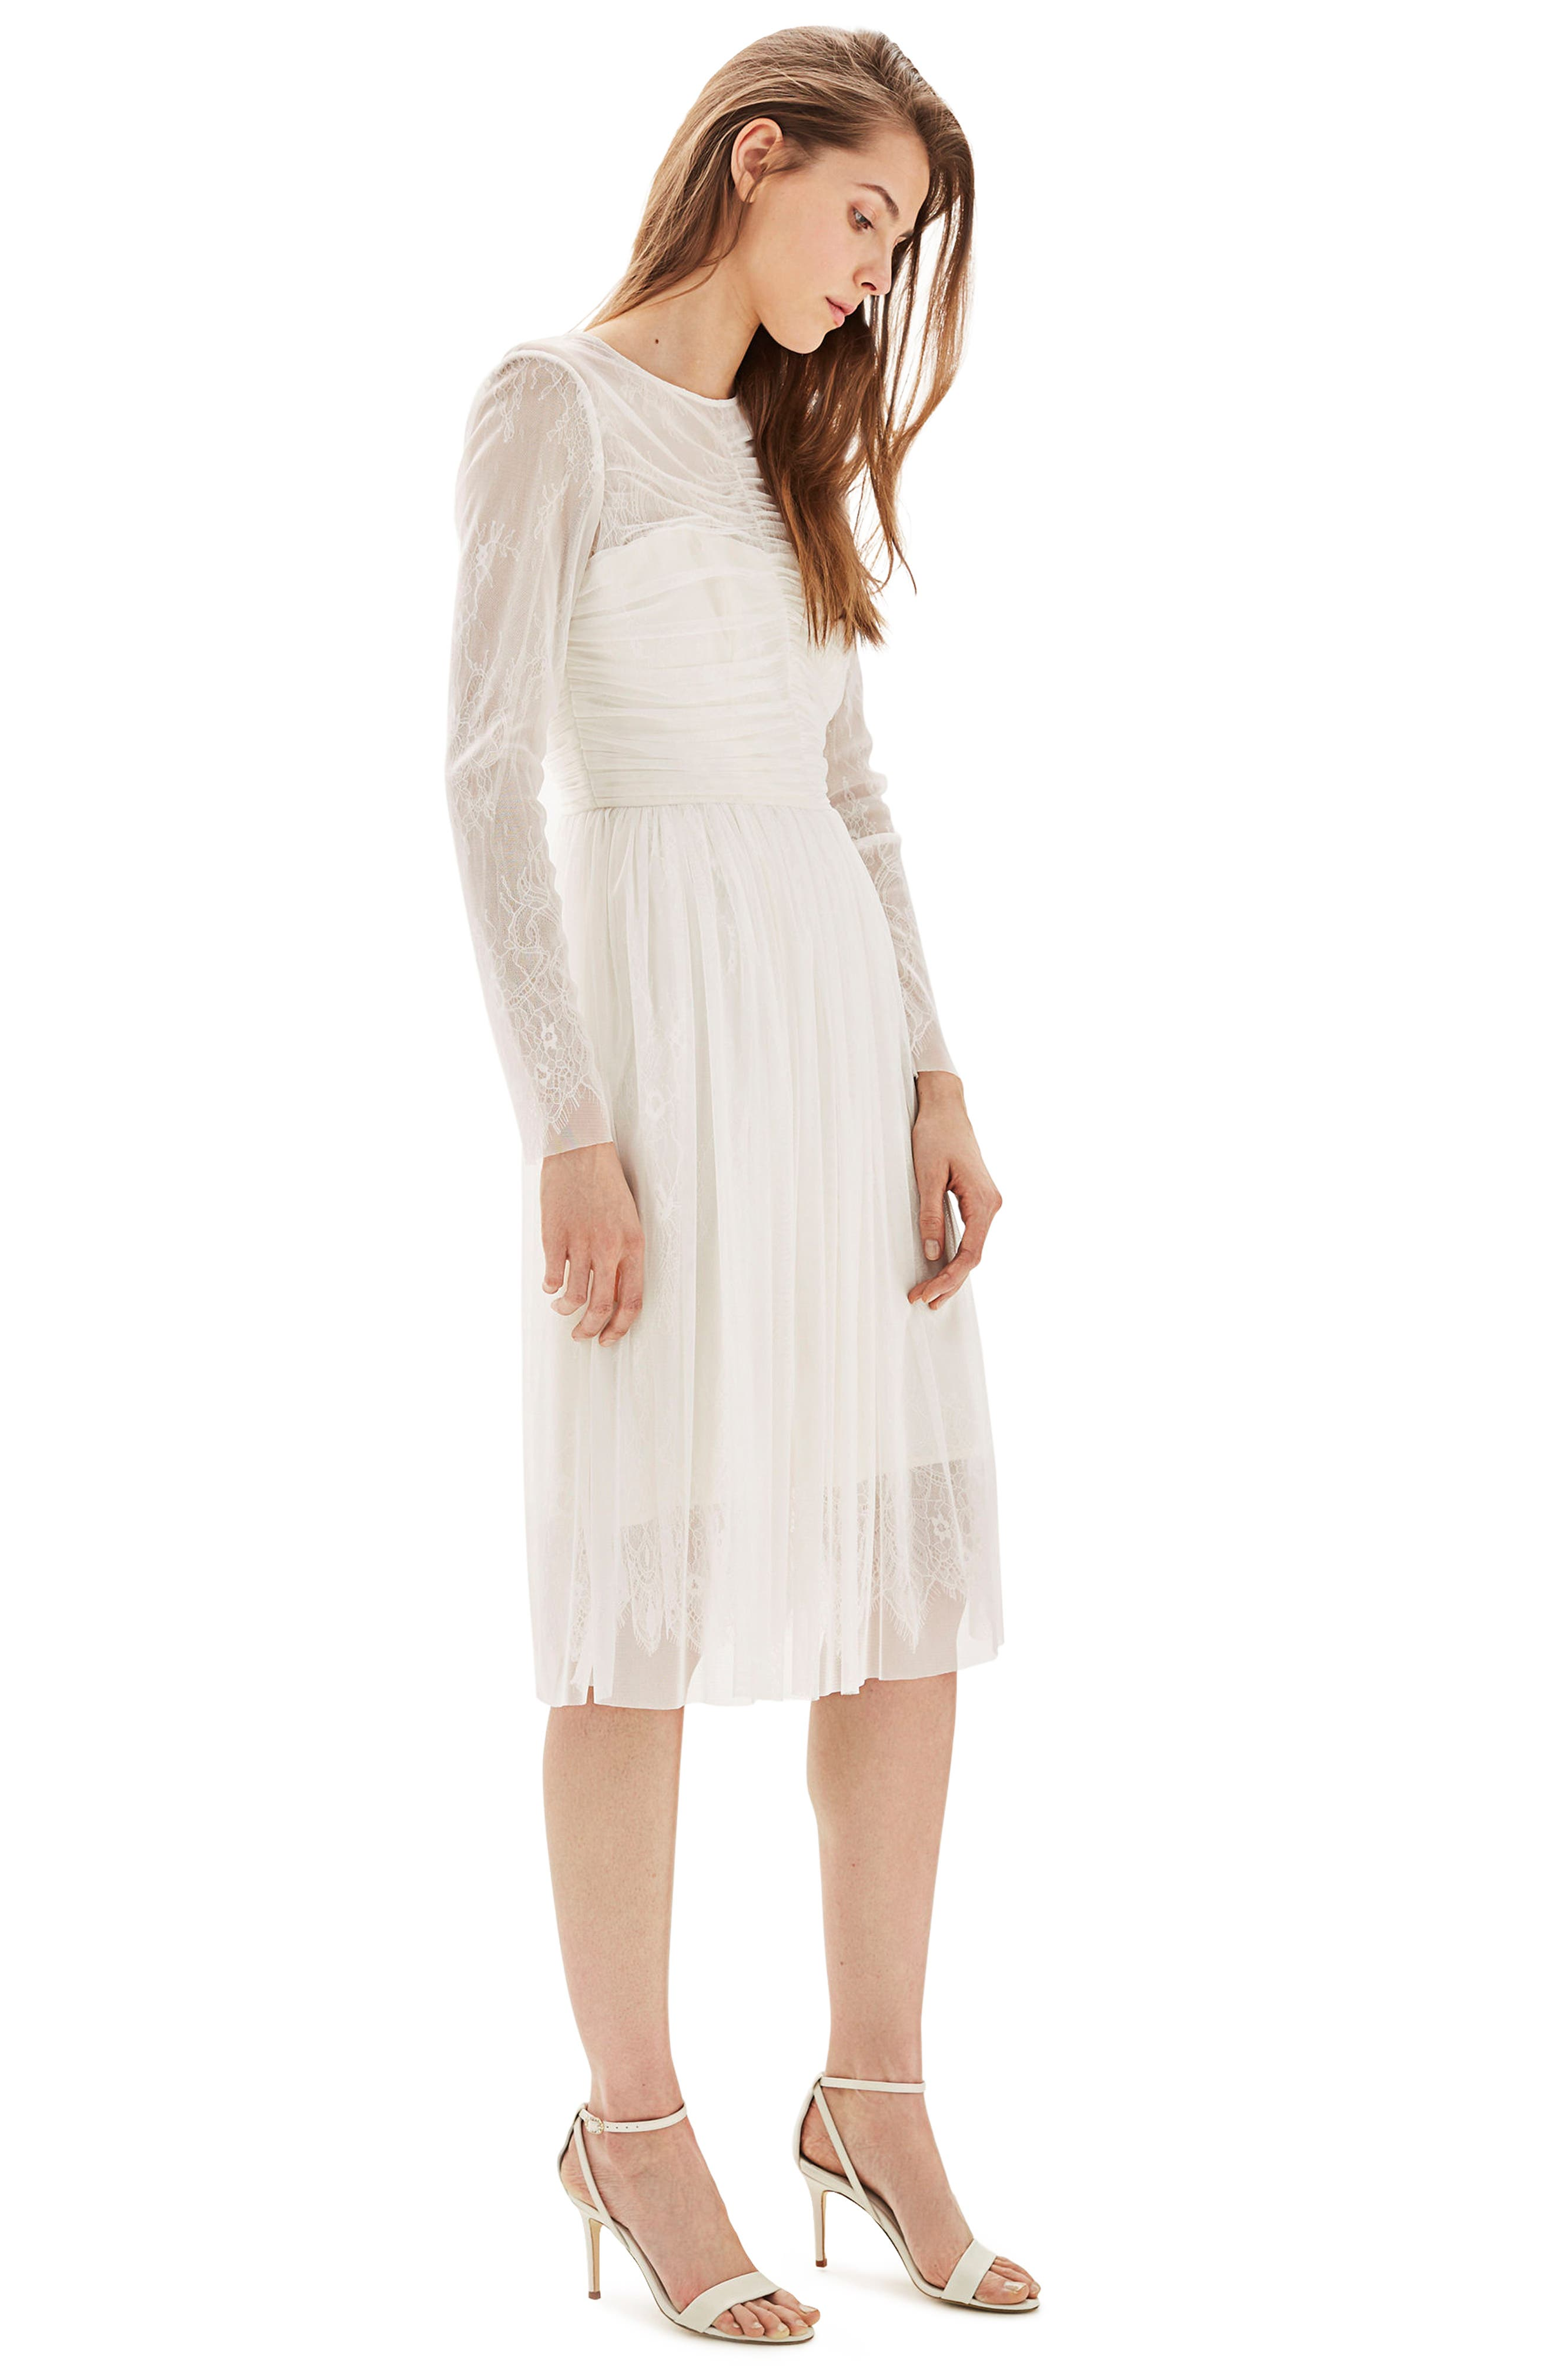 Topshop Bride Tulle & Chantilly Lace Midi Dress